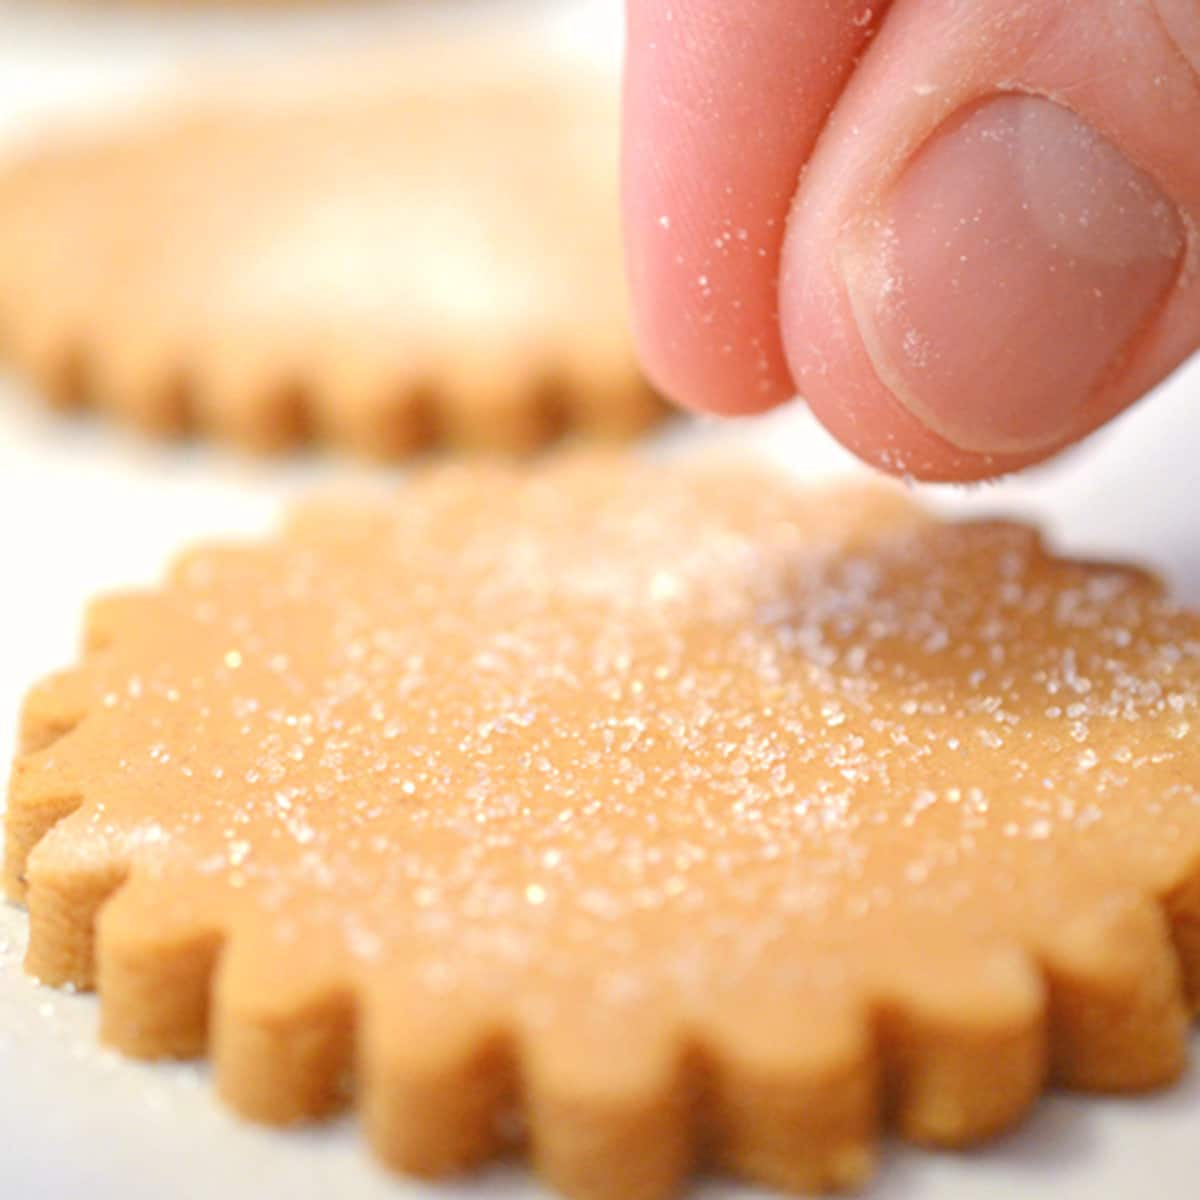 Sprinkling sugar on an unbaked cookie.